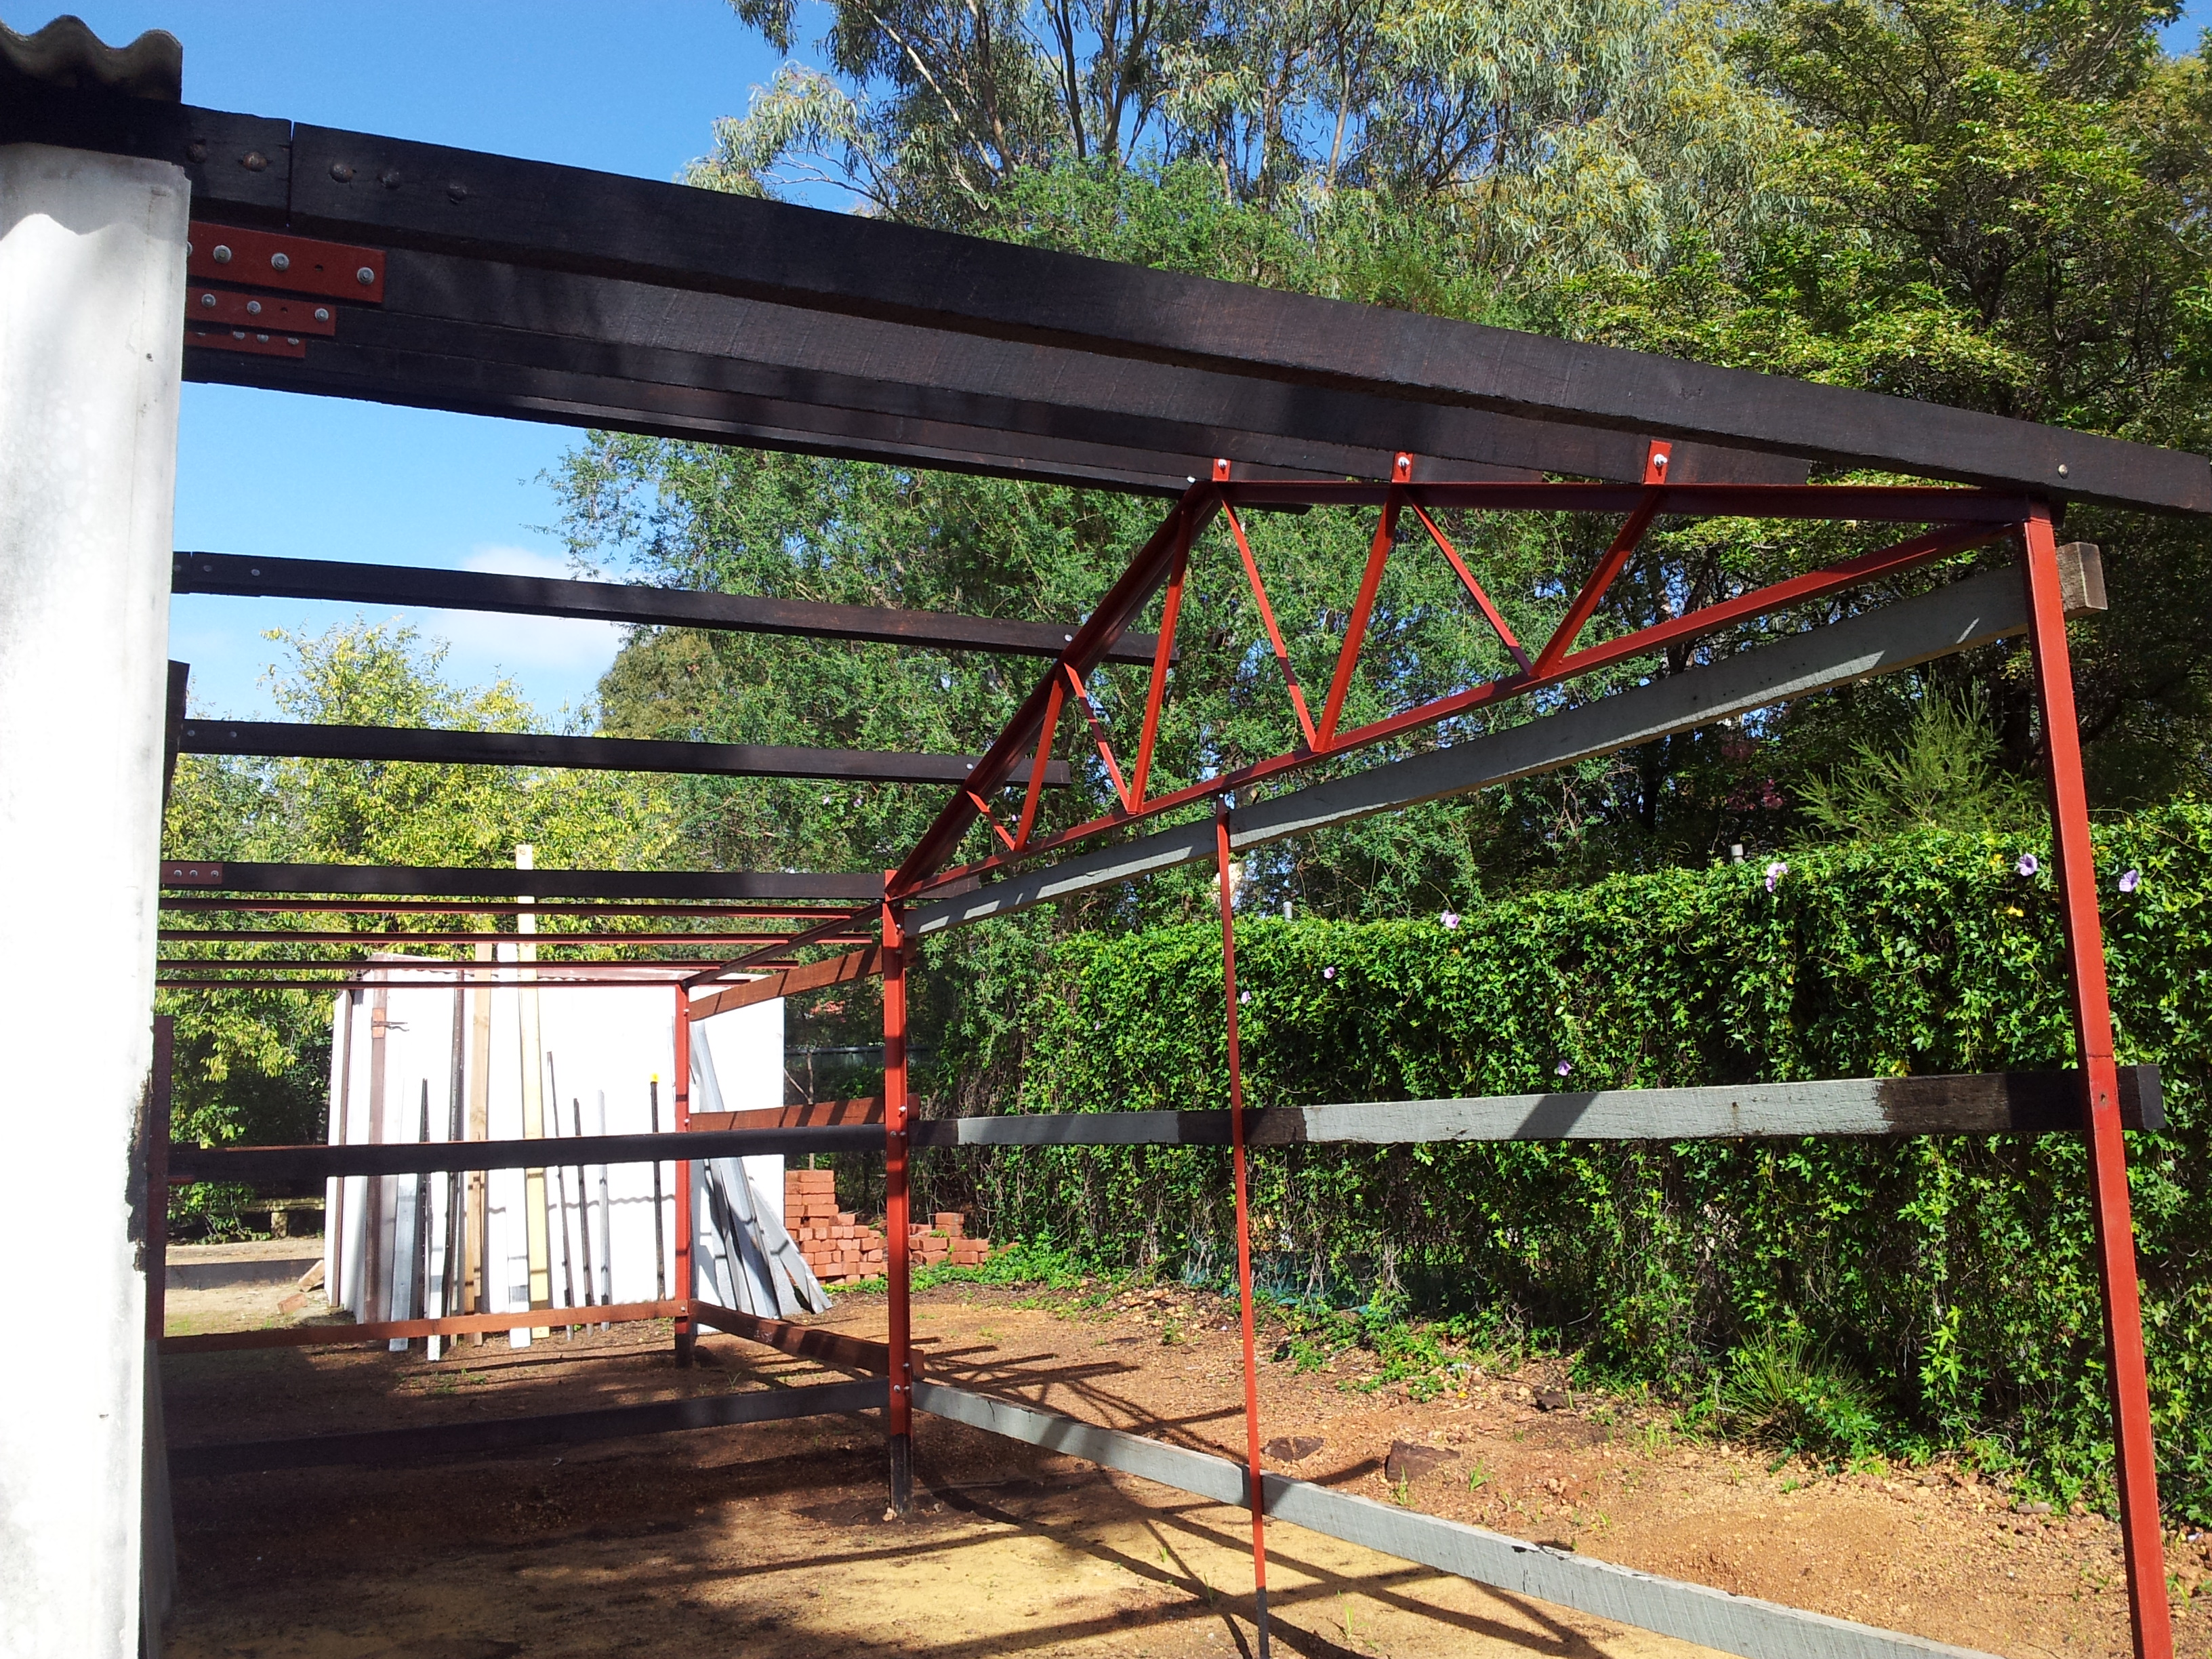 custom angle iron trusses